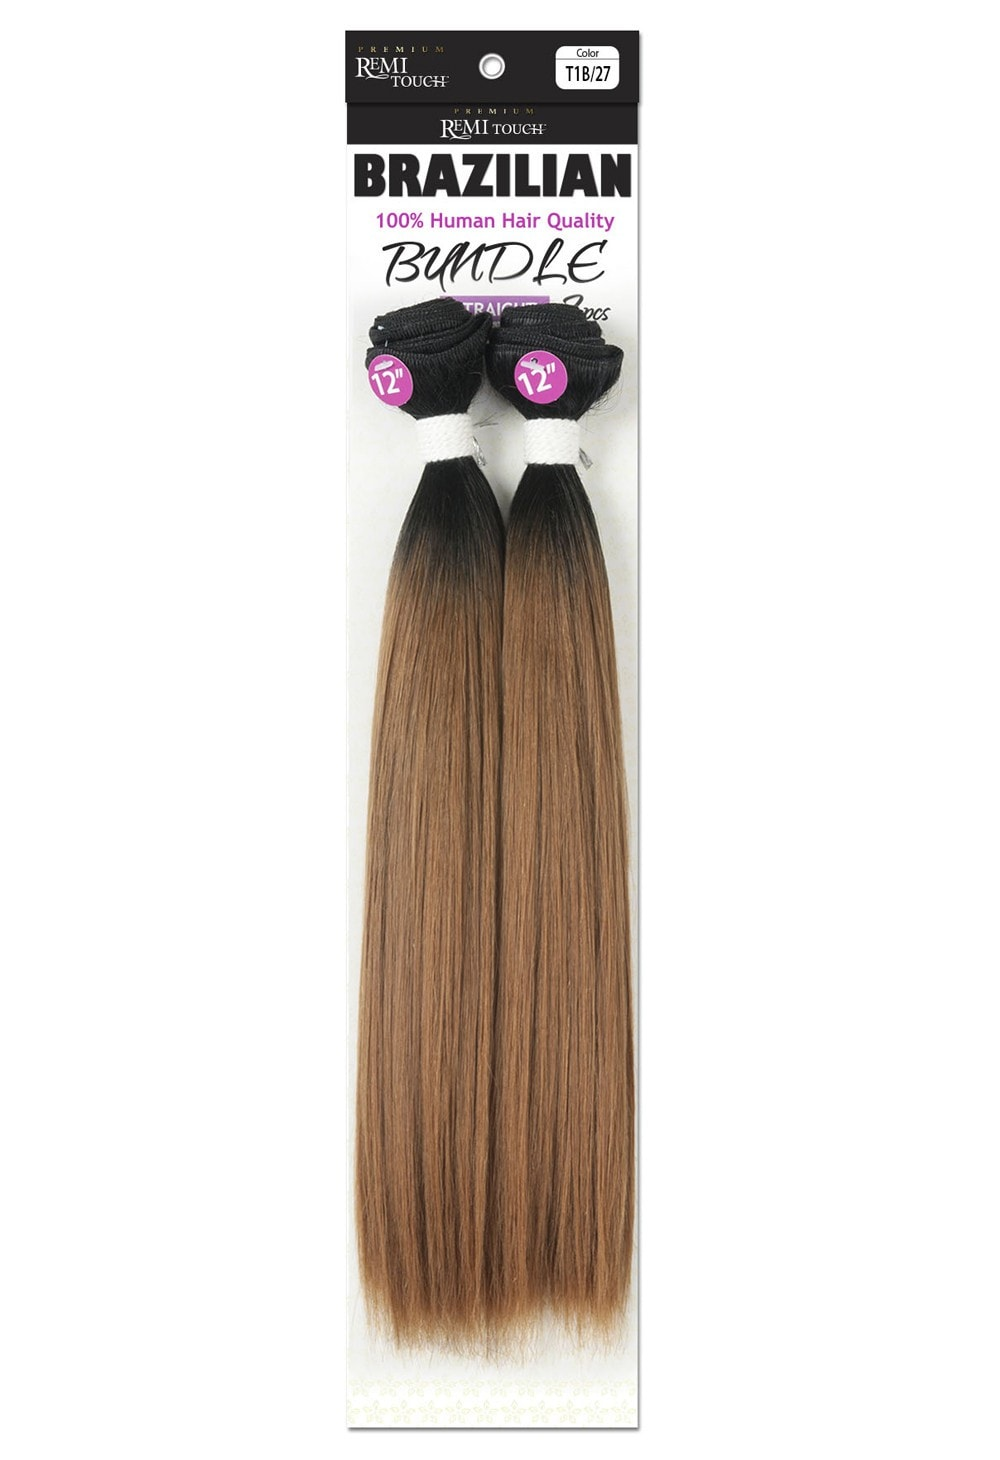 Premium Essence Remi Touch Brazilian - Yaki Straight - Beauty EmpireChade - 1